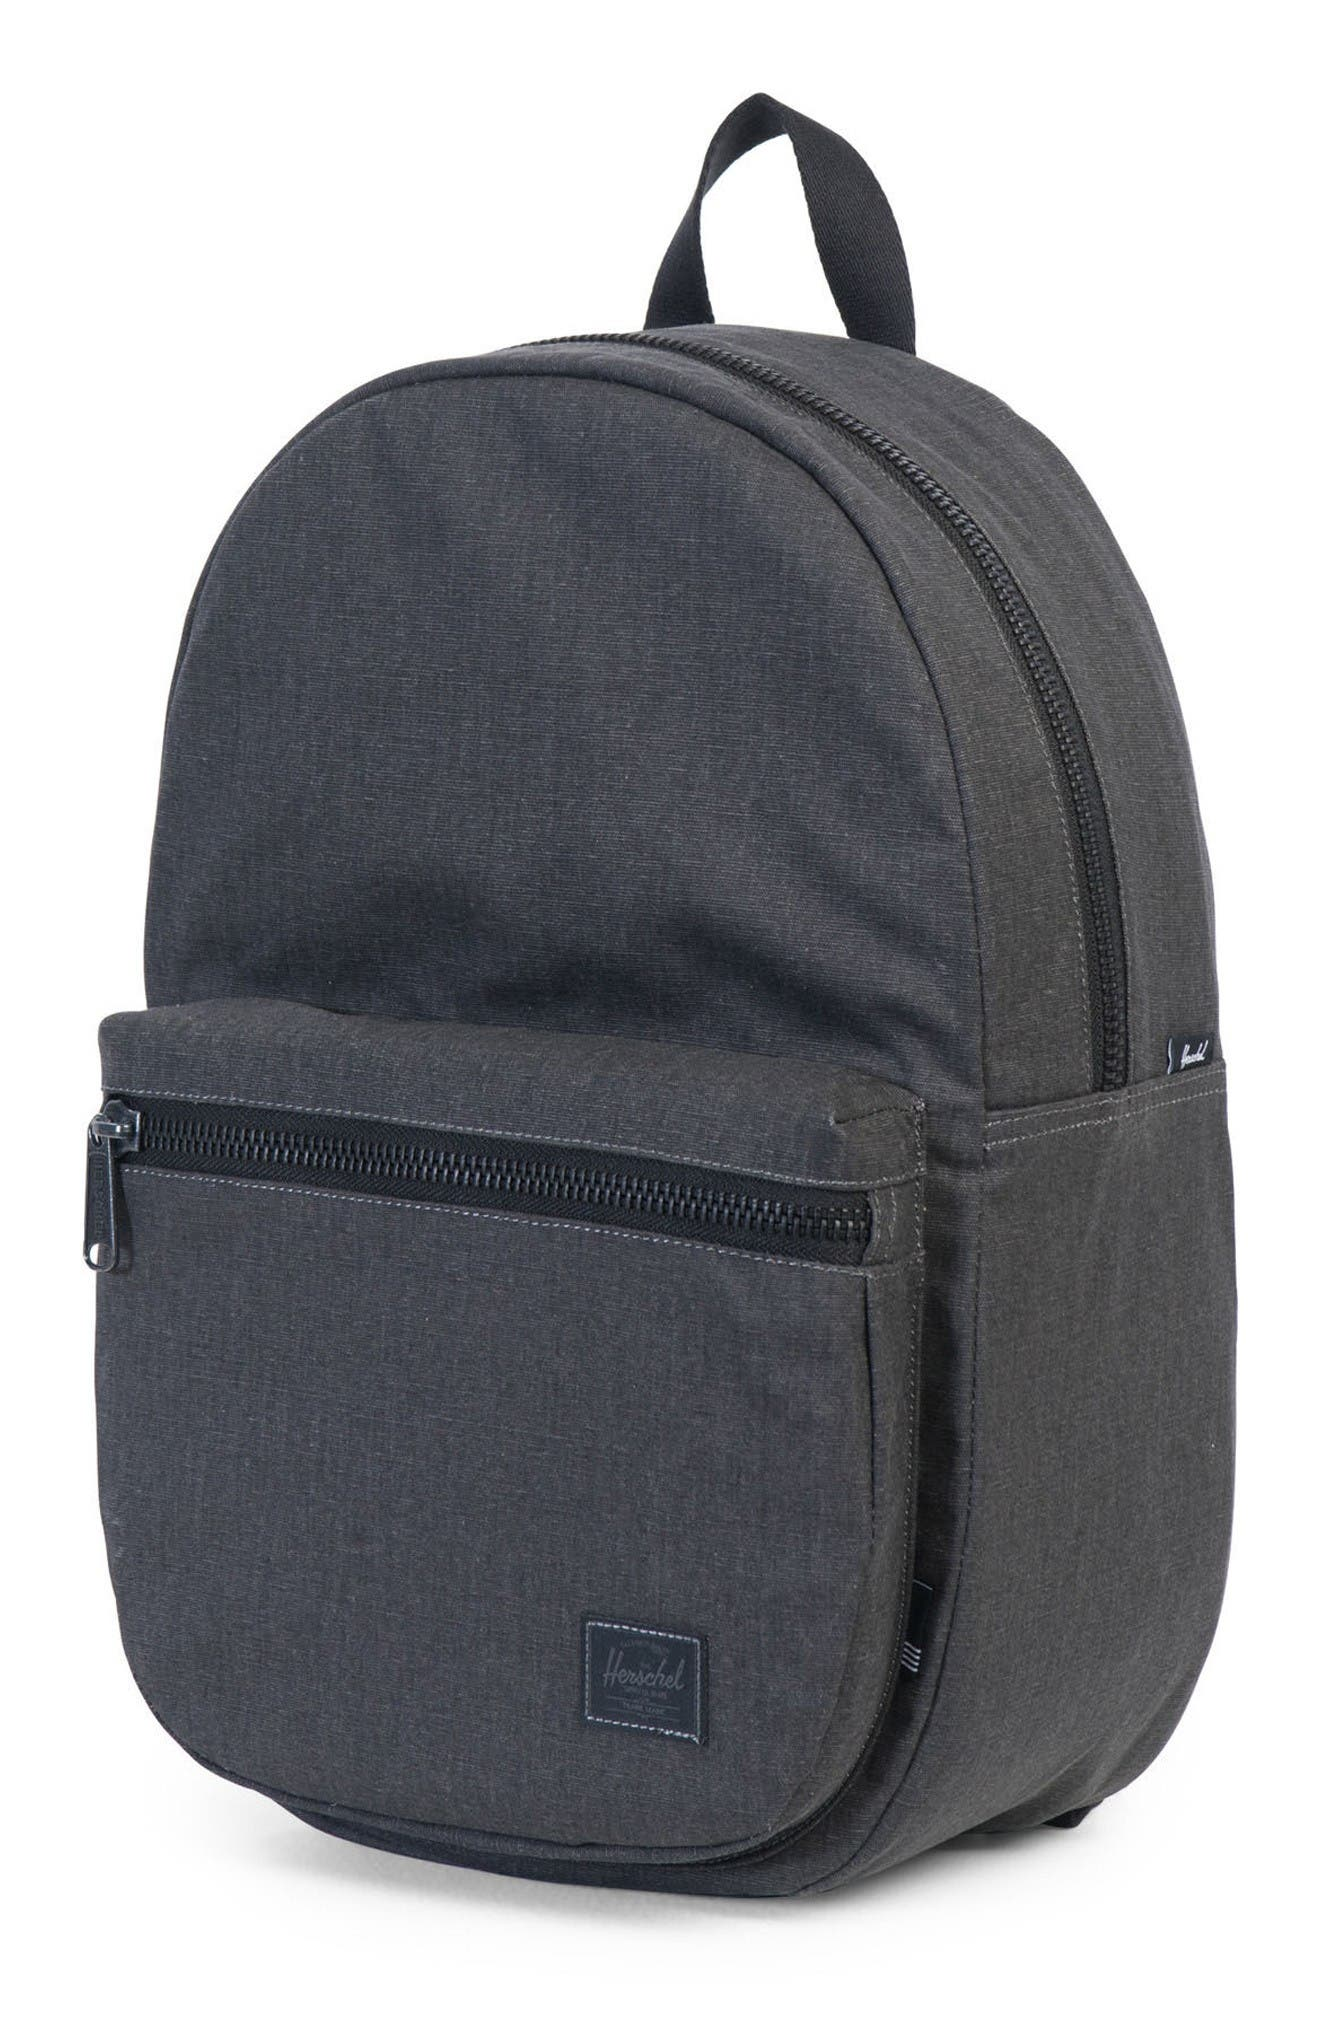 Lawson Backpack,                             Alternate thumbnail 4, color,                             Black Ion Washed